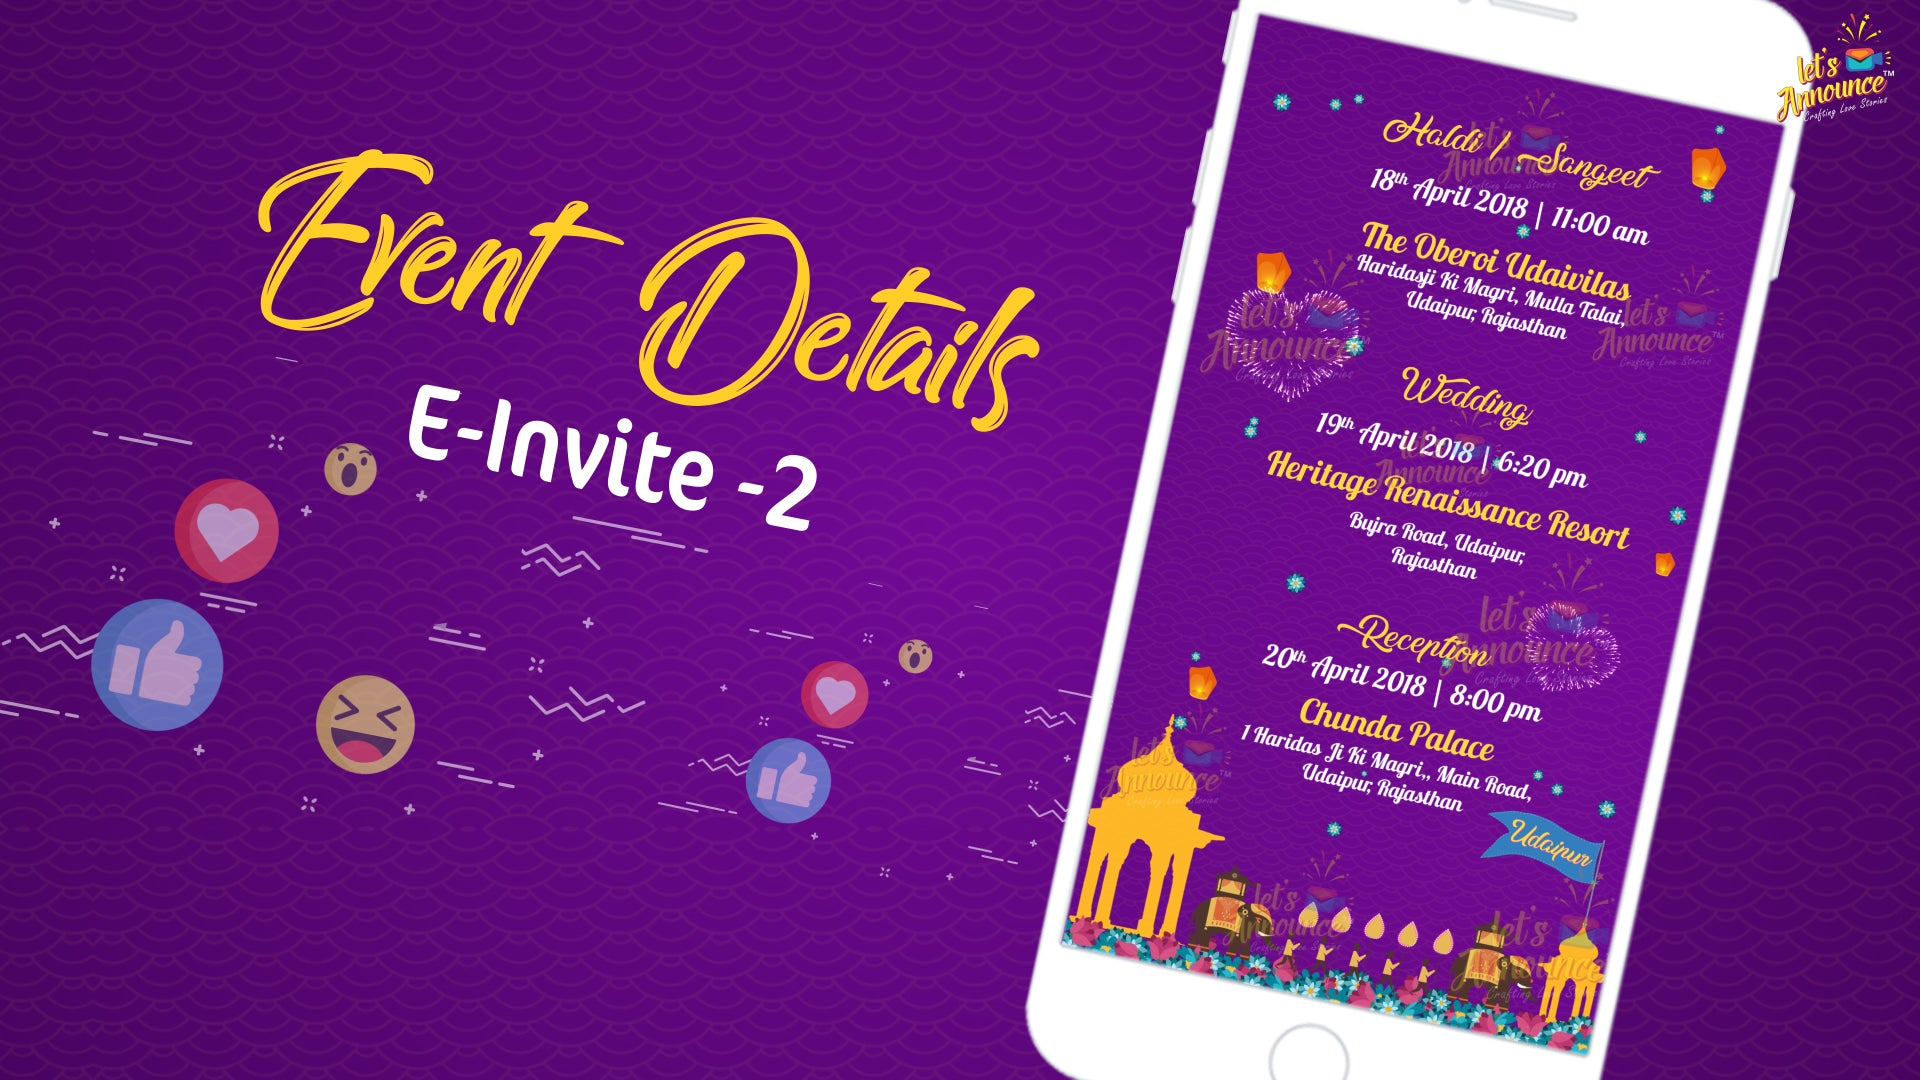 Majestic Wedding E-invite (USD 50$)